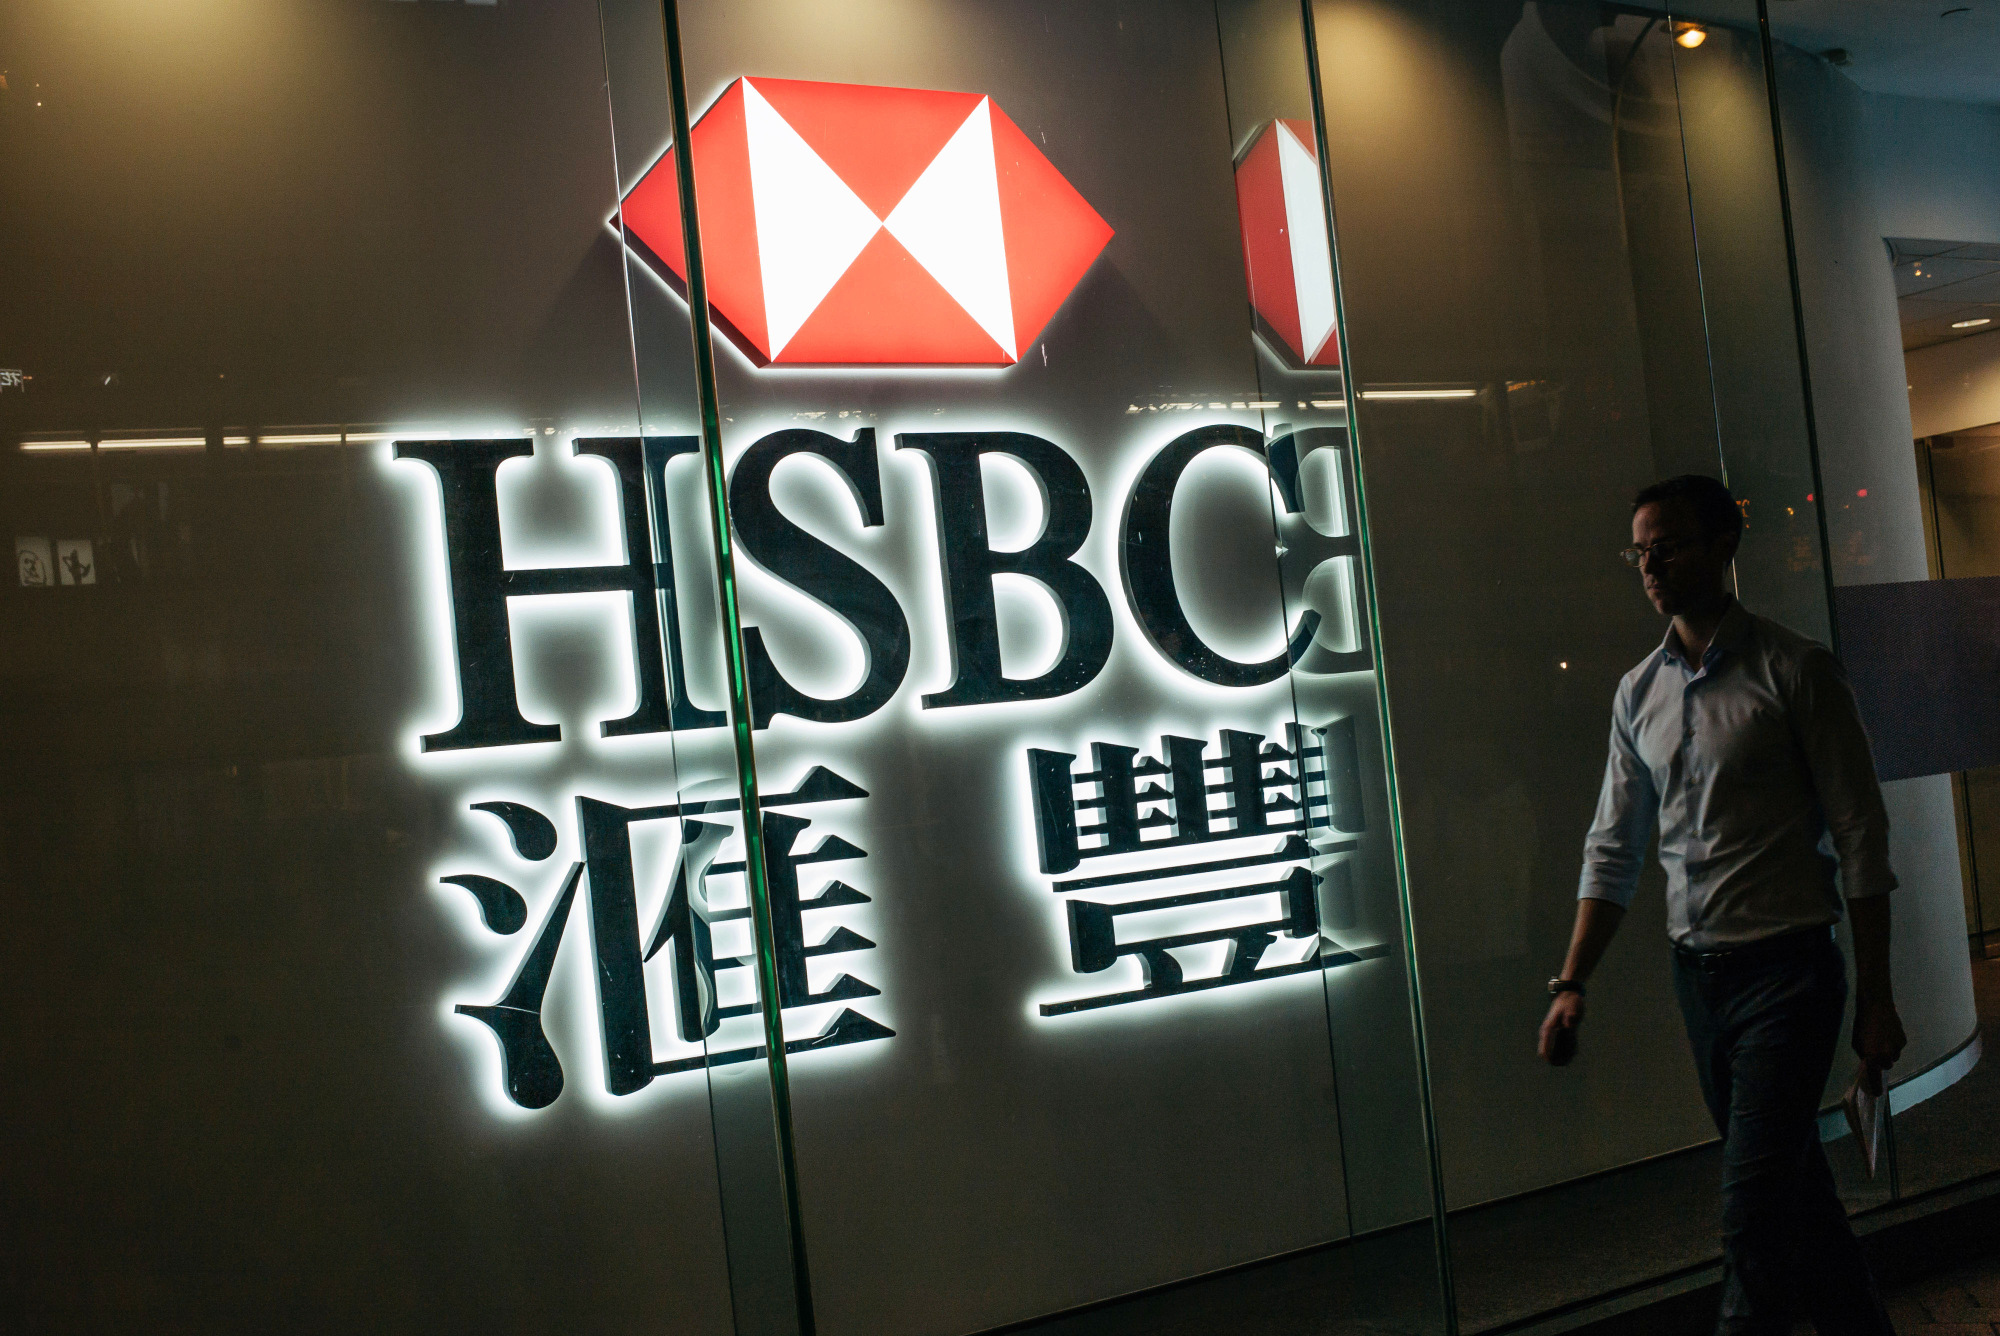 HSBC Gears Up for China Listing Through Shanghai-London Link